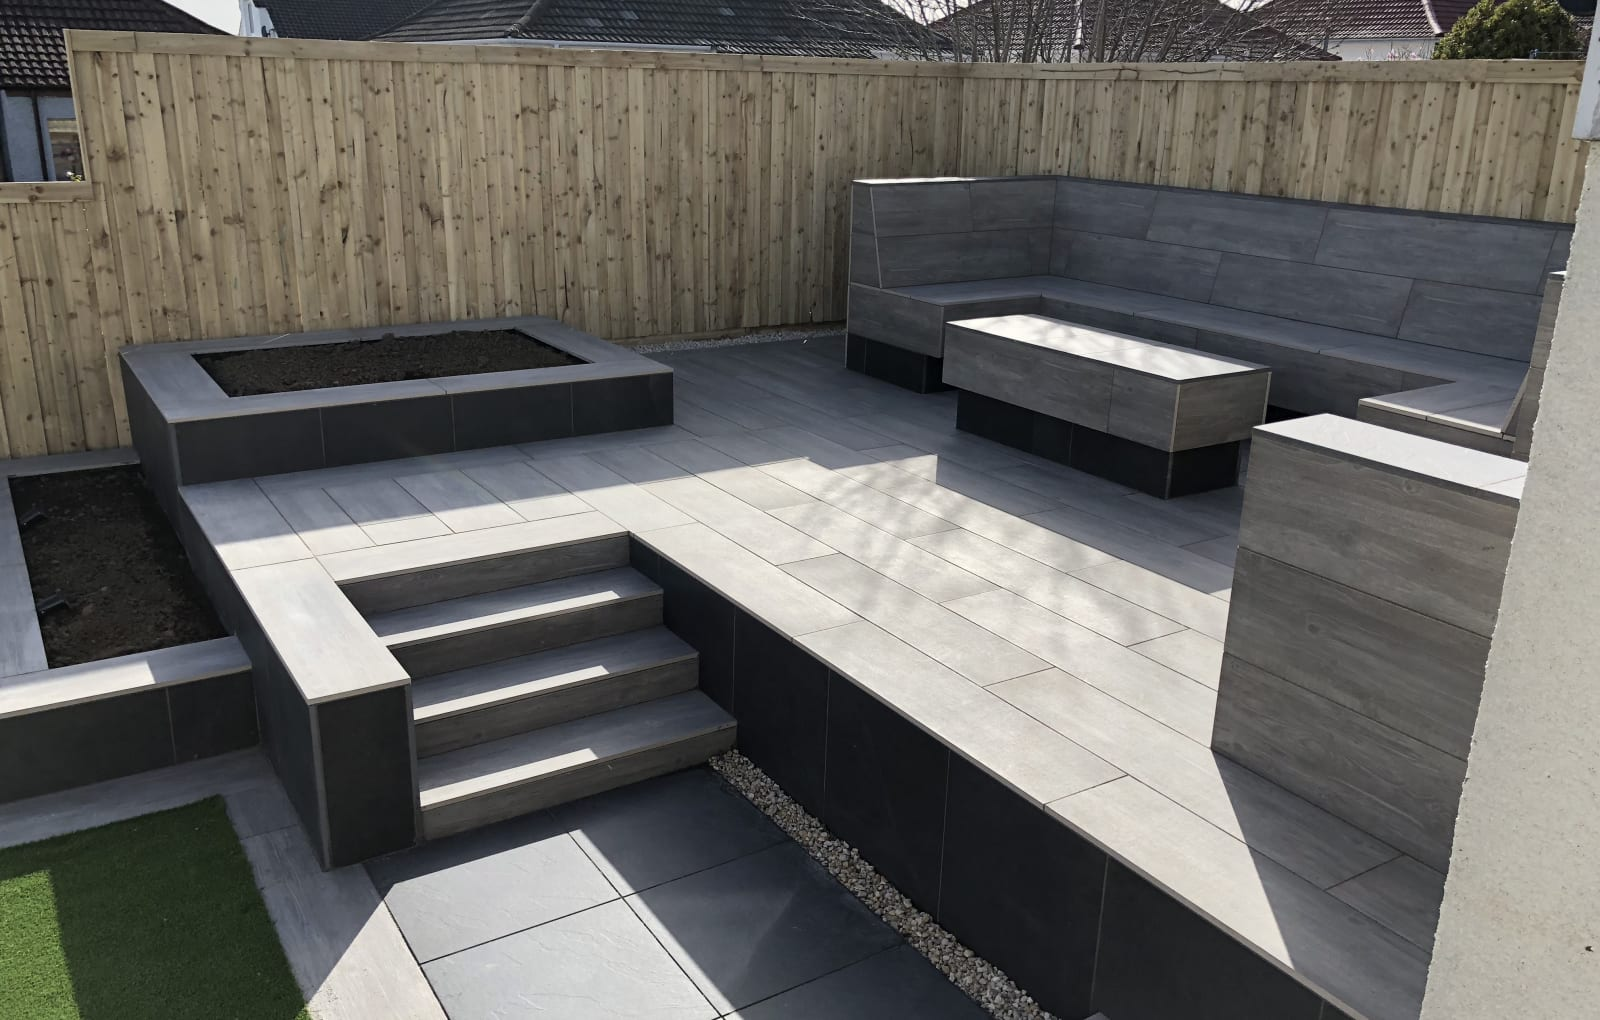 Symphony porcelain paving with bespoke seating area